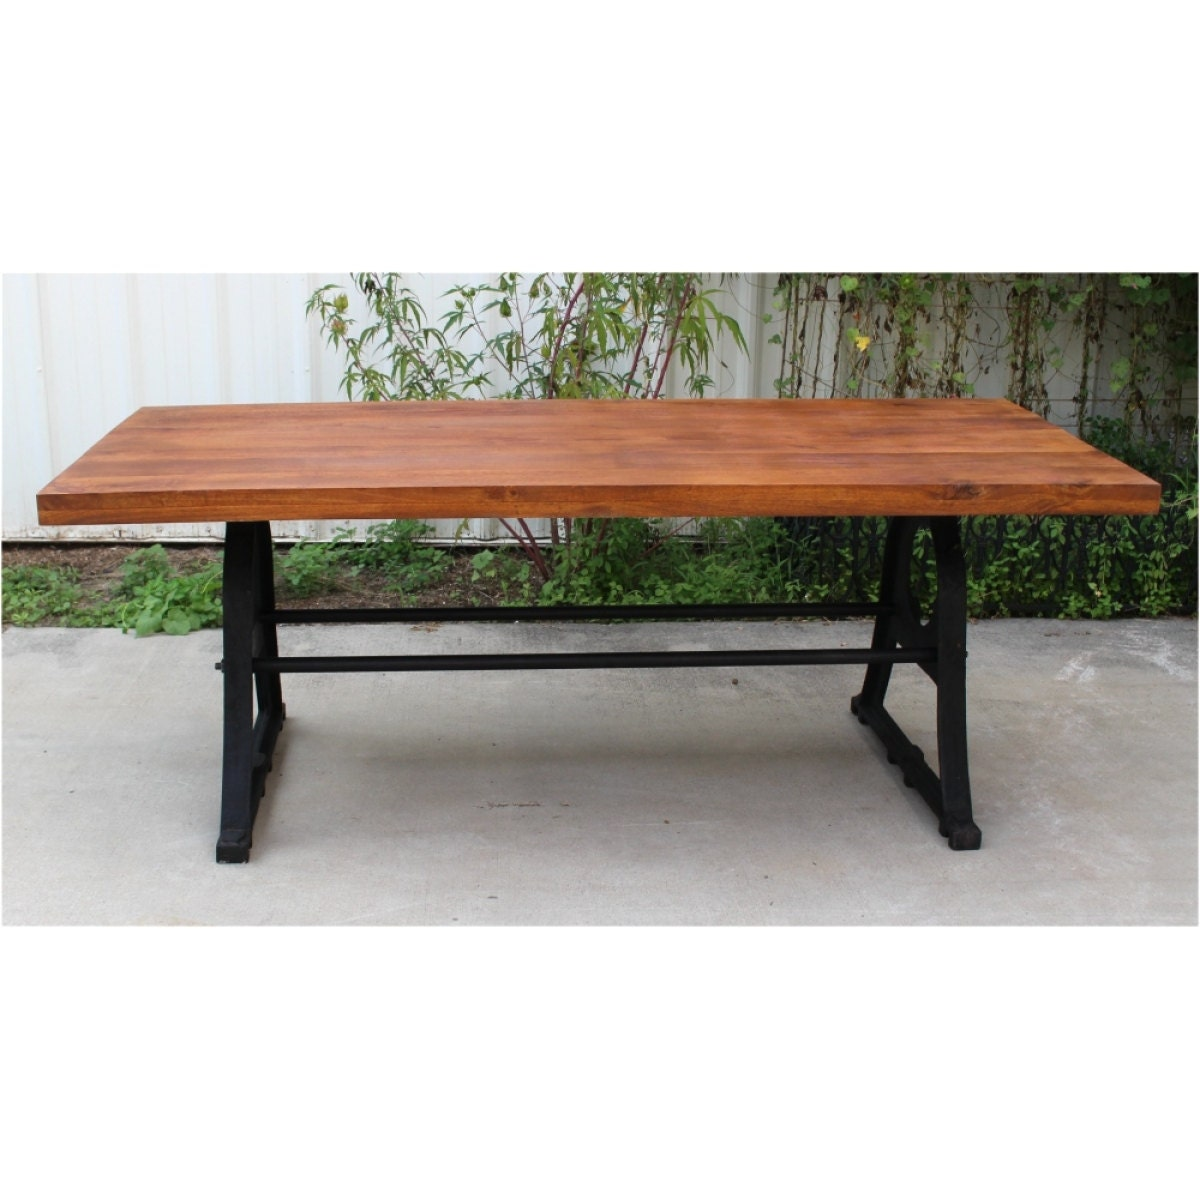 Vintage Industrial Conference Kitchen Dining Room Table Cast